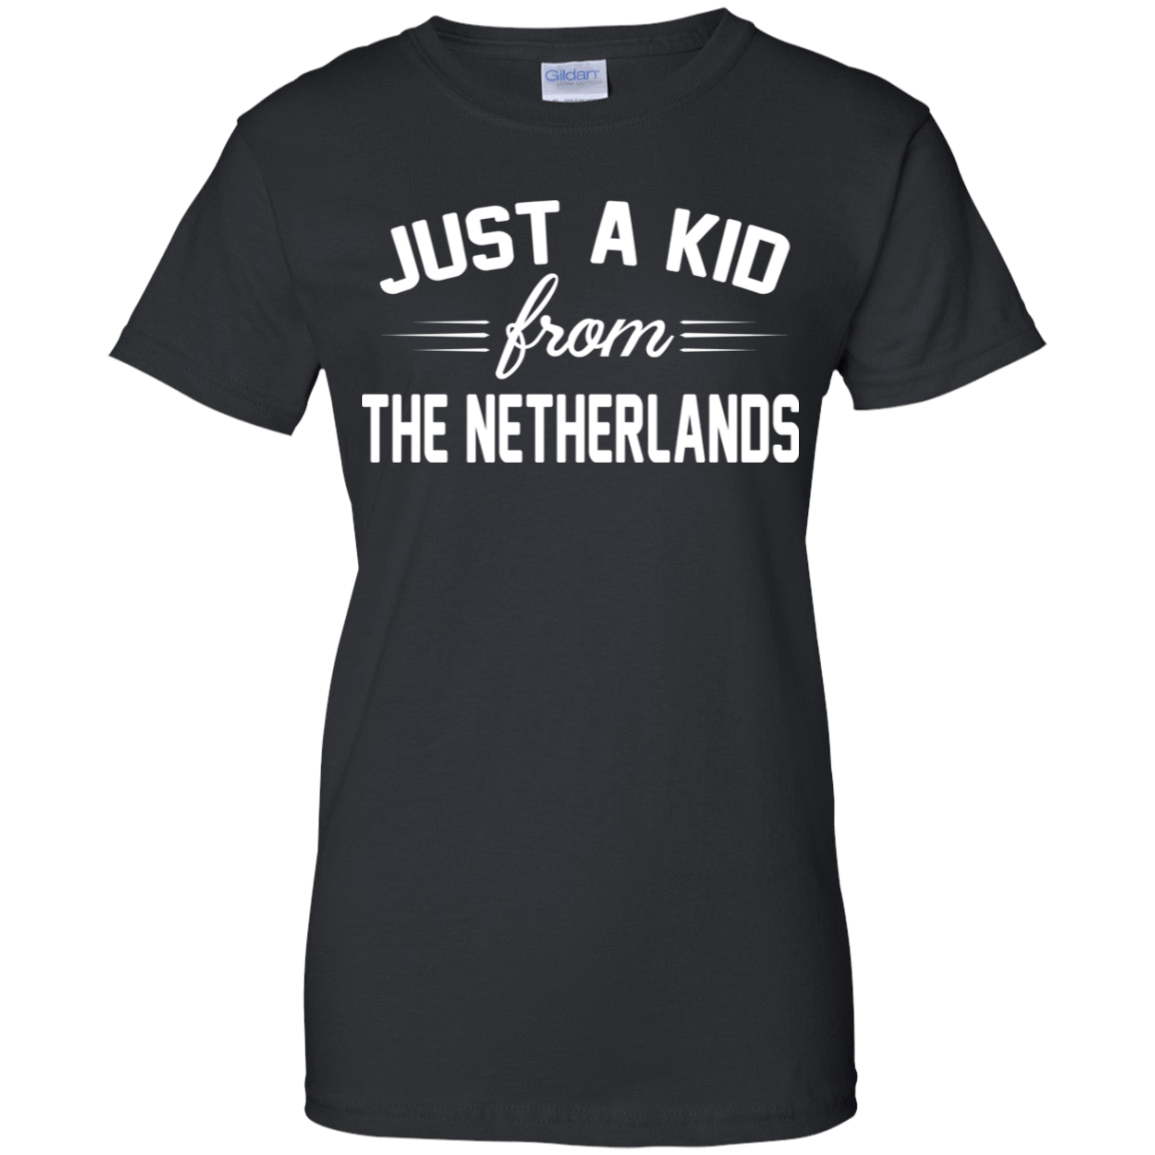 Just a Kid Store | Netherlands T-Shirts, Hoodie, Tank 939-9248-72090842-44695 - Tee Ript